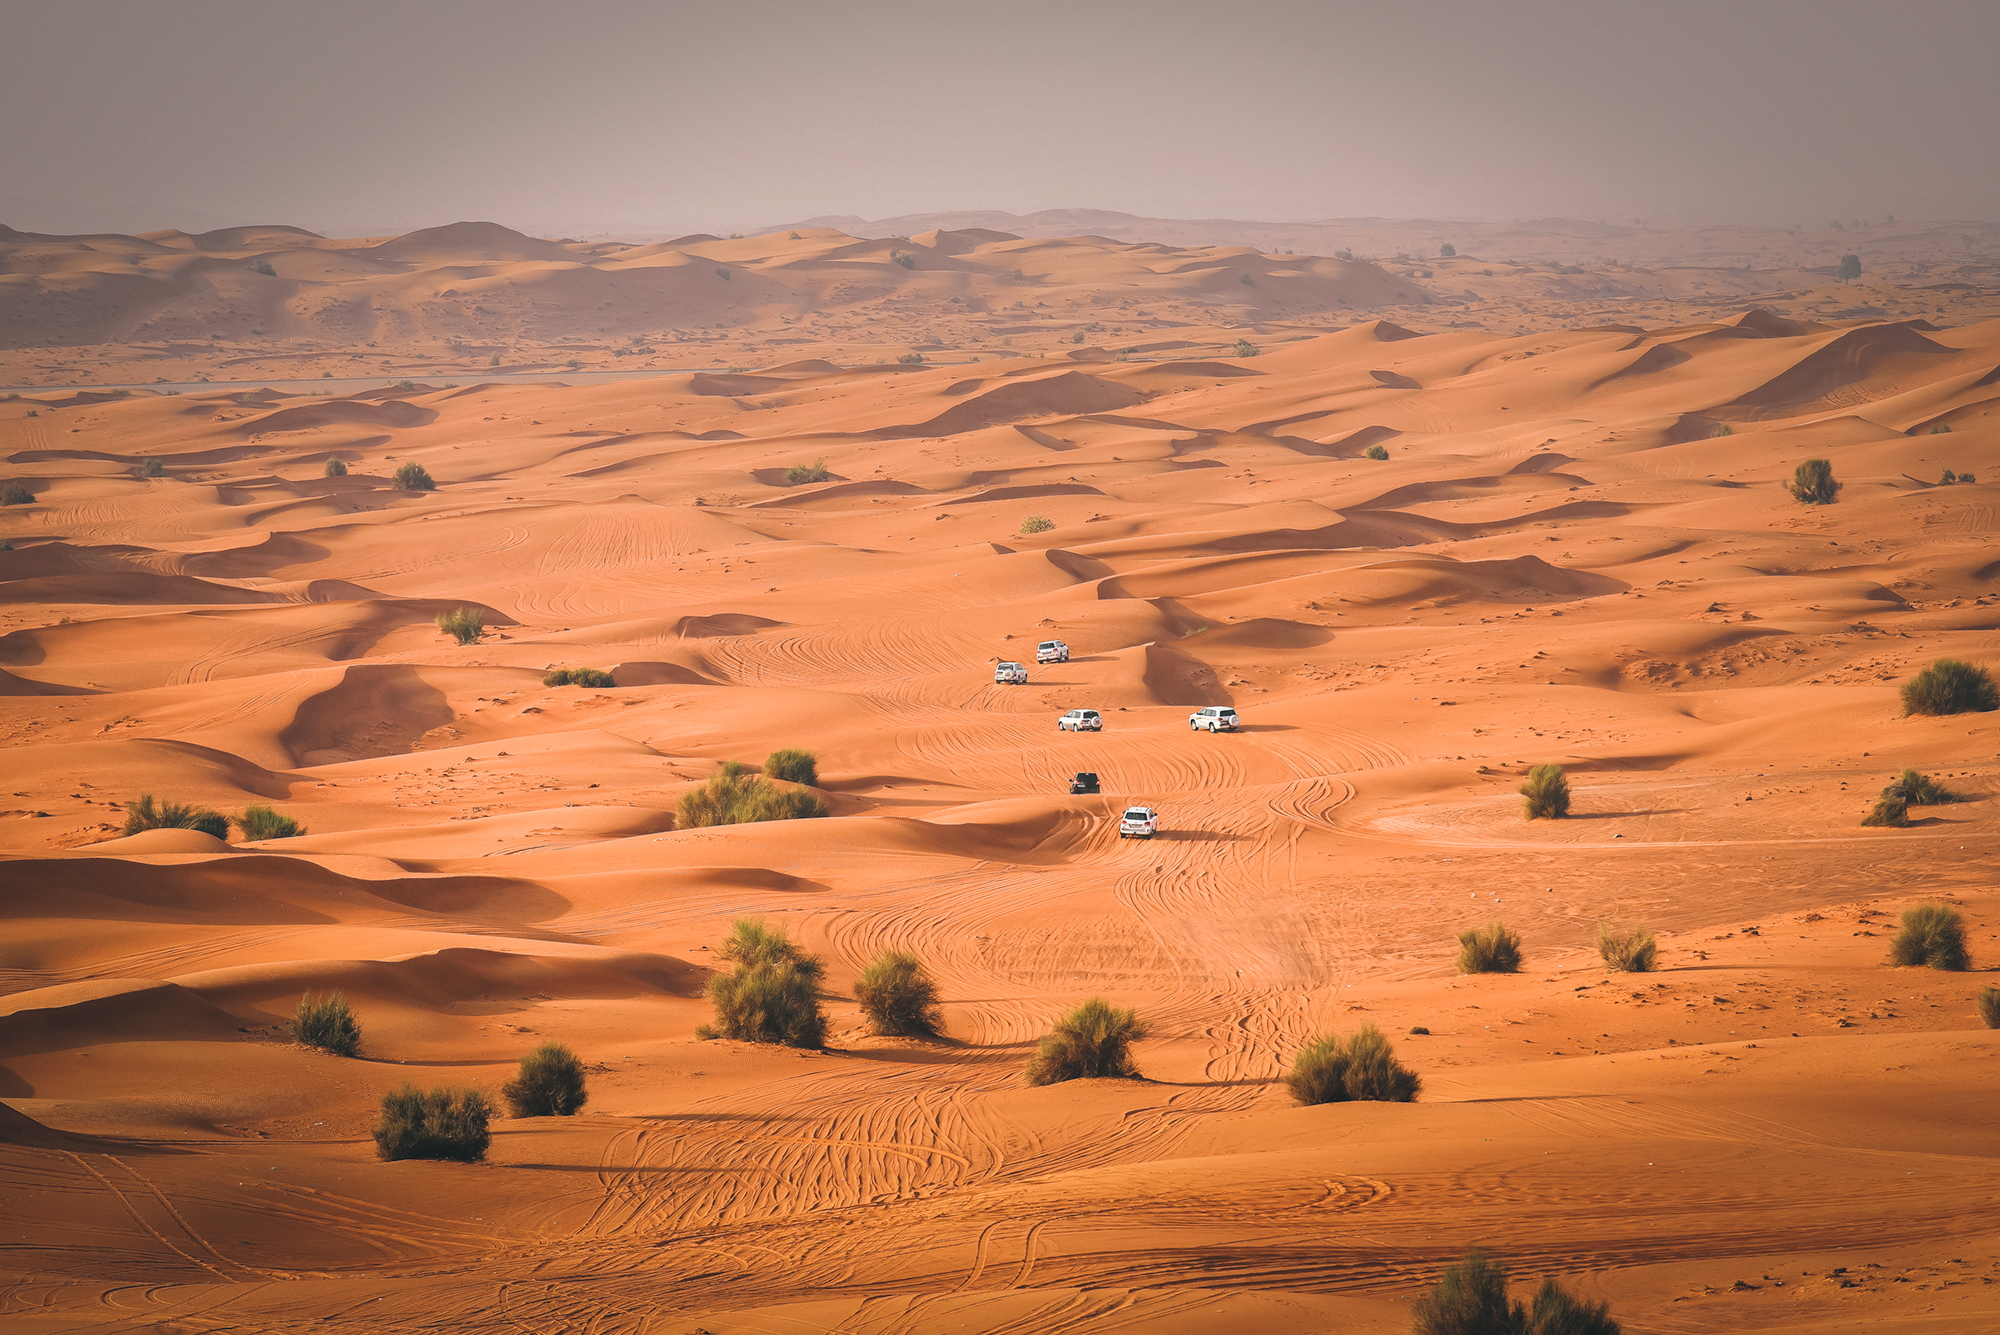 Jeeps-in-caravan-in-orange-desert-dubai.jpg